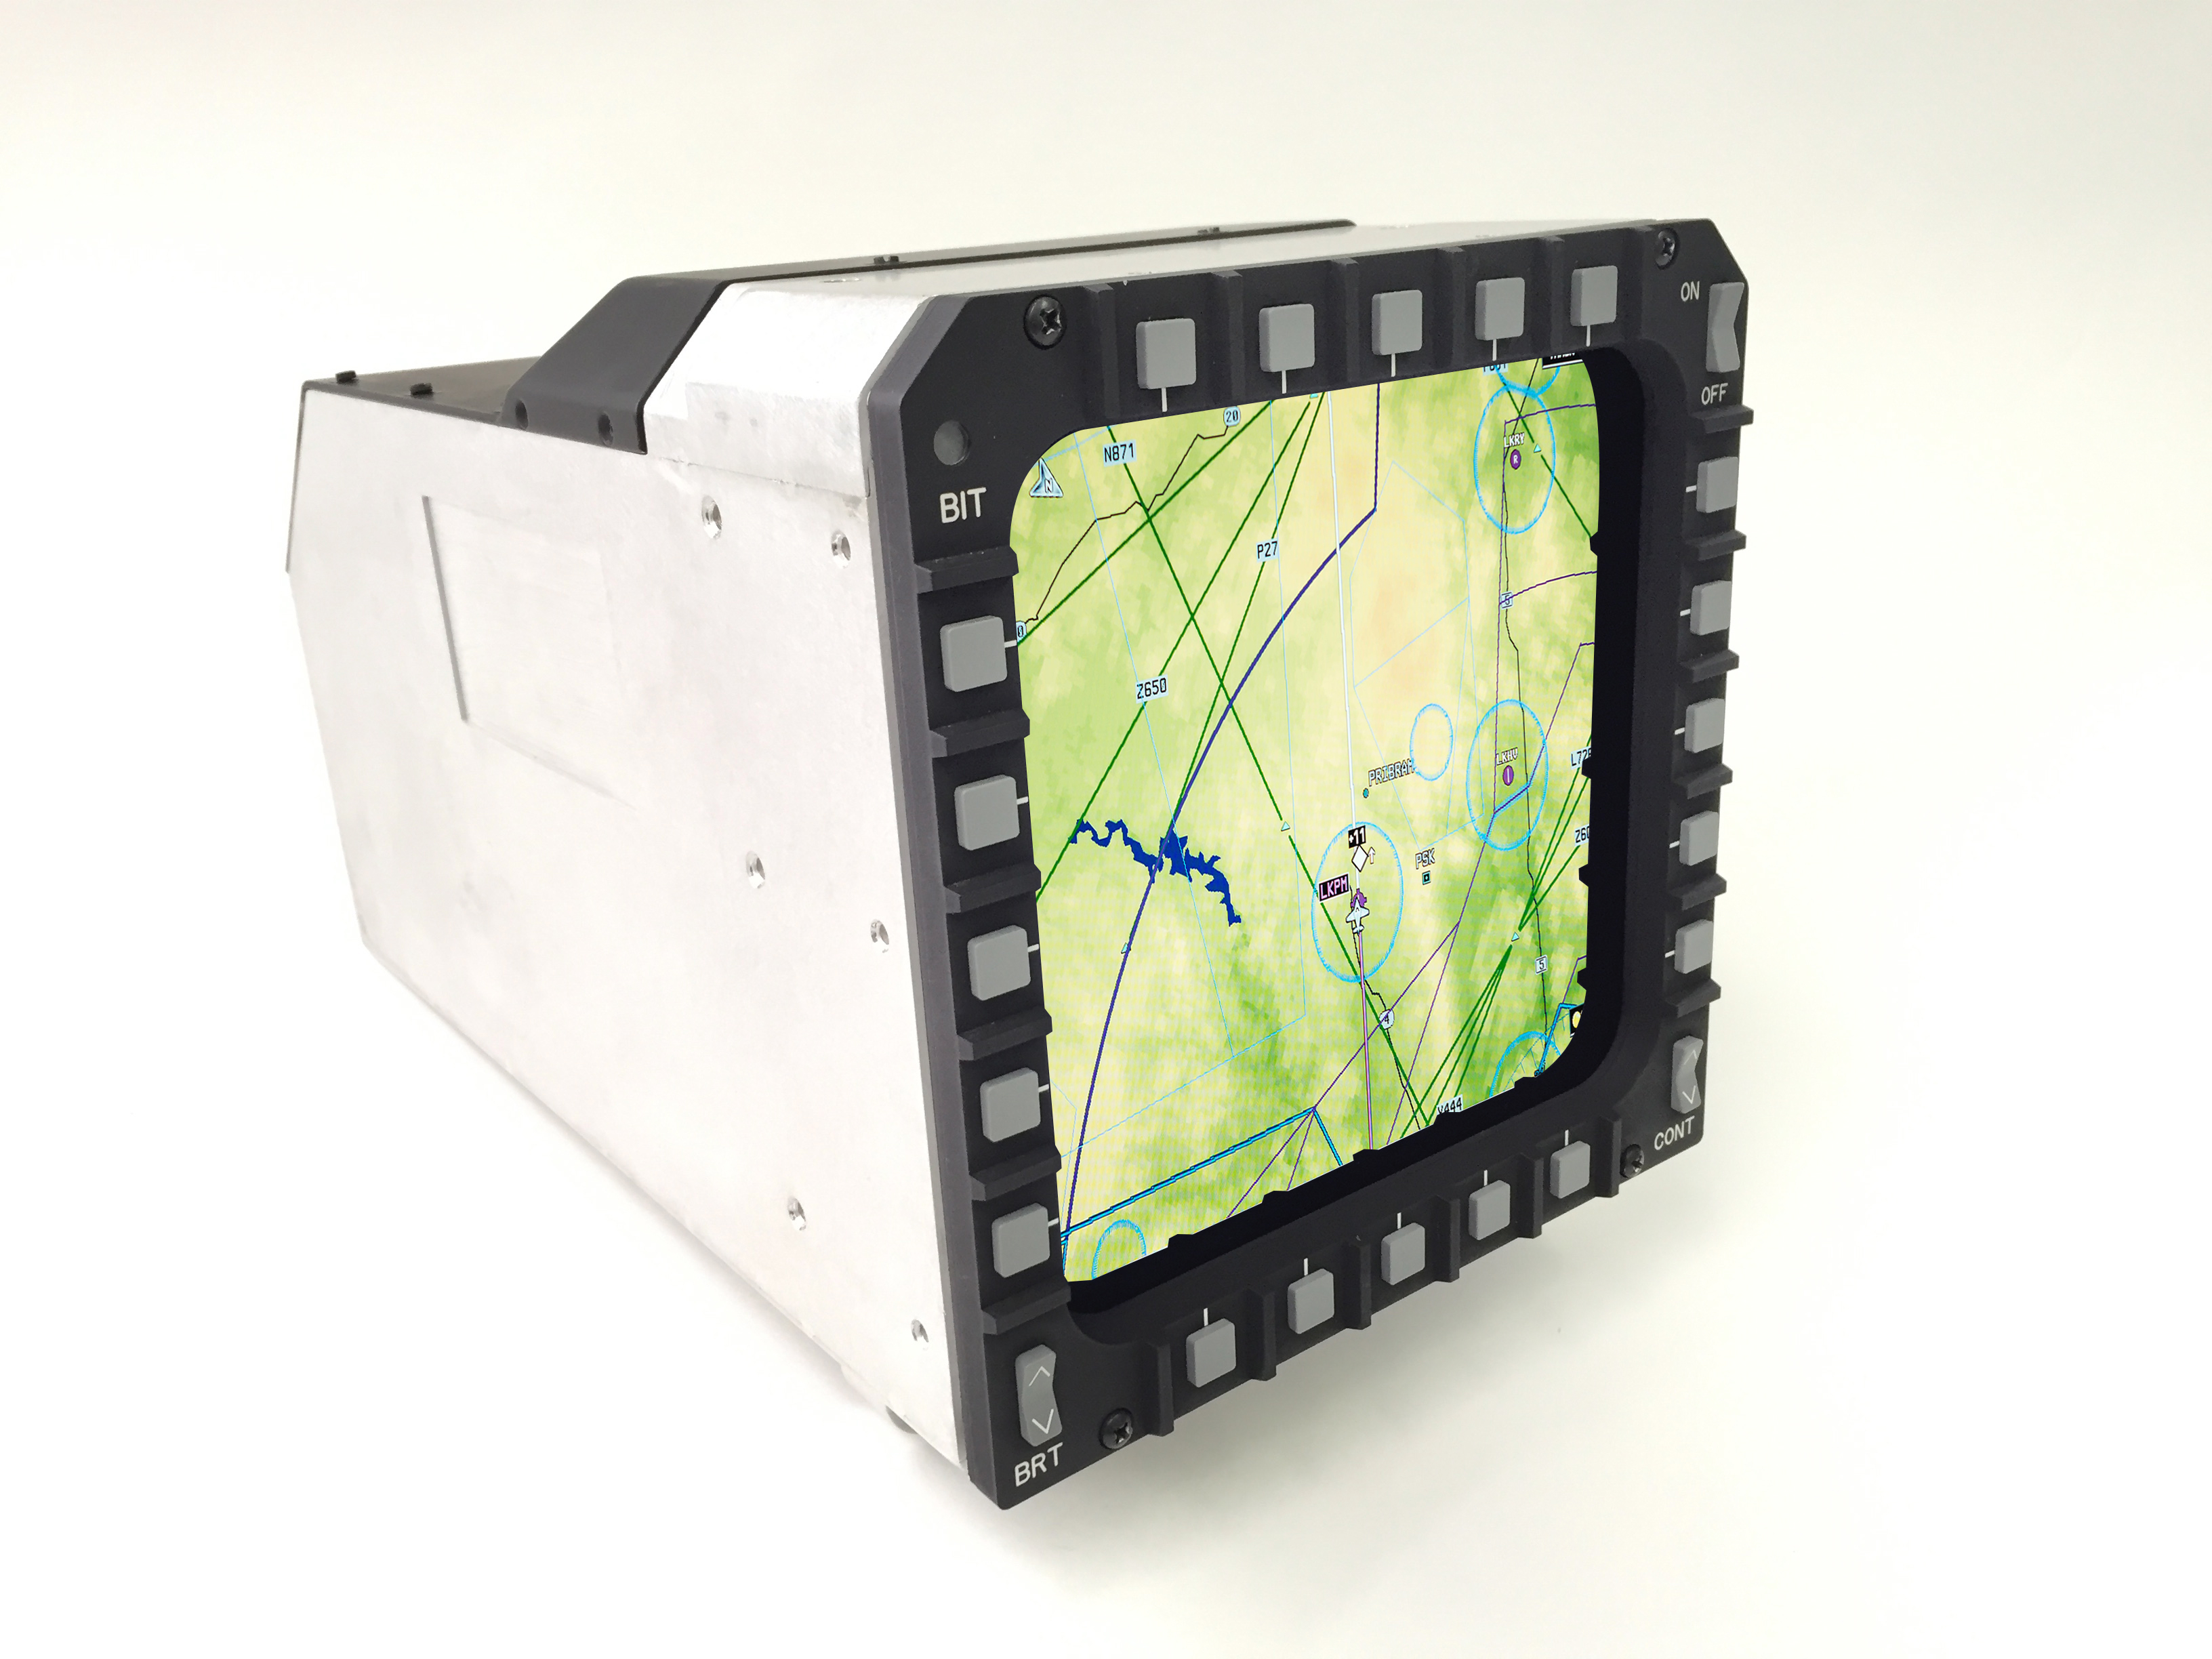 Technology Integration Trends In Avionic Displays Military Lcd Liquid Crystal Display Figure 1 The 6 By Multi Purpose Is A Component That Fit Directly Into Cockpit Of Existing F 15 With Minimal